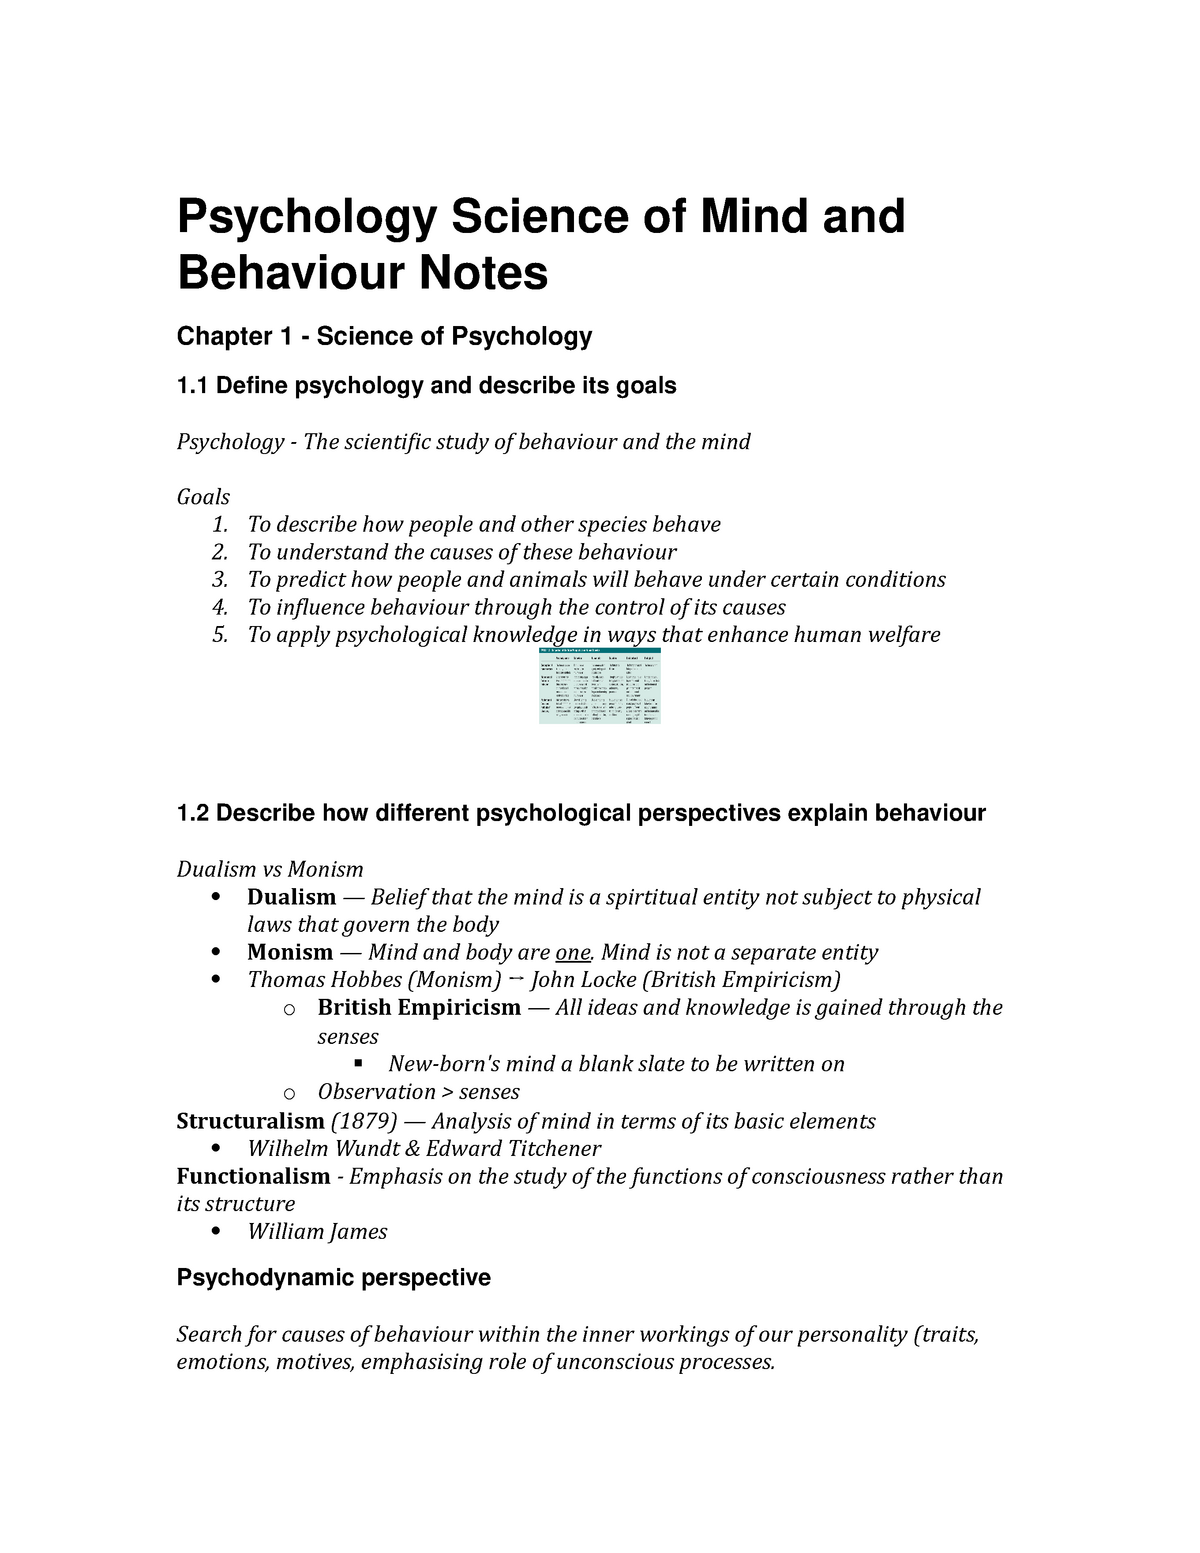 PSYC1101 Science of Mind and Behaviour Notes Chpt 1,2,3,7